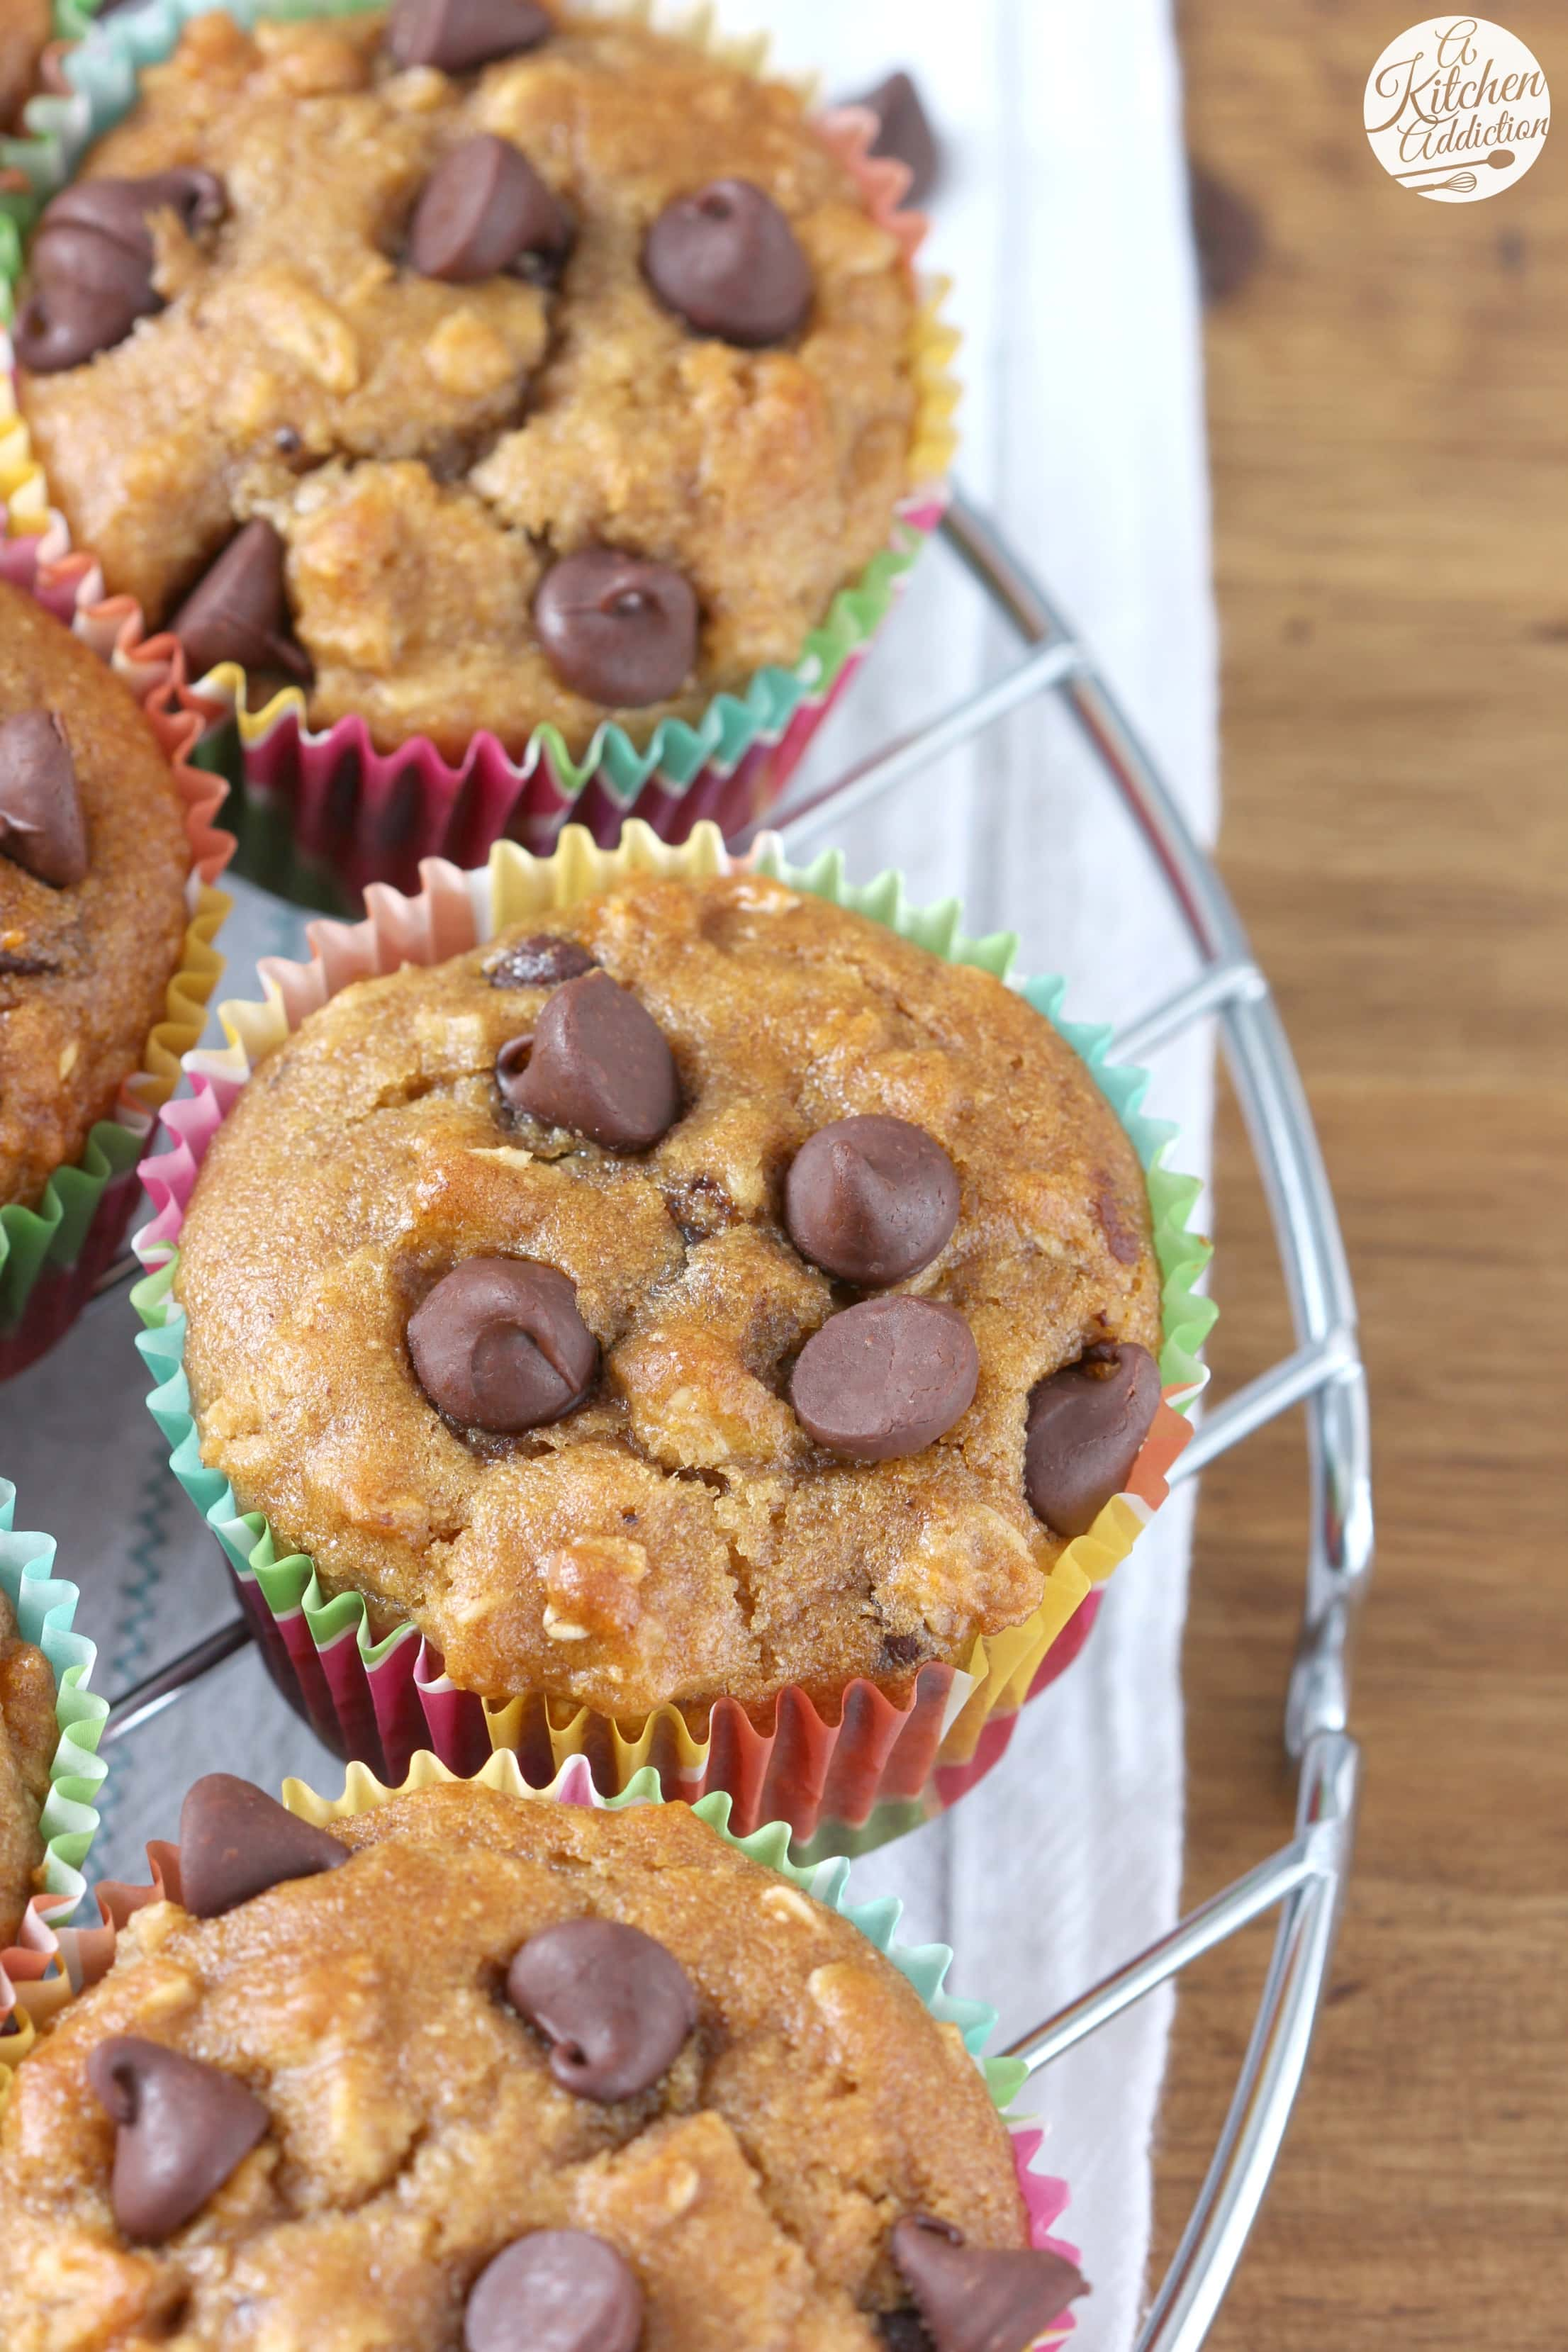 Healthier Peanut Butter Chocolate Chip Oat Muffins Recipe from A Kitchen Addiction